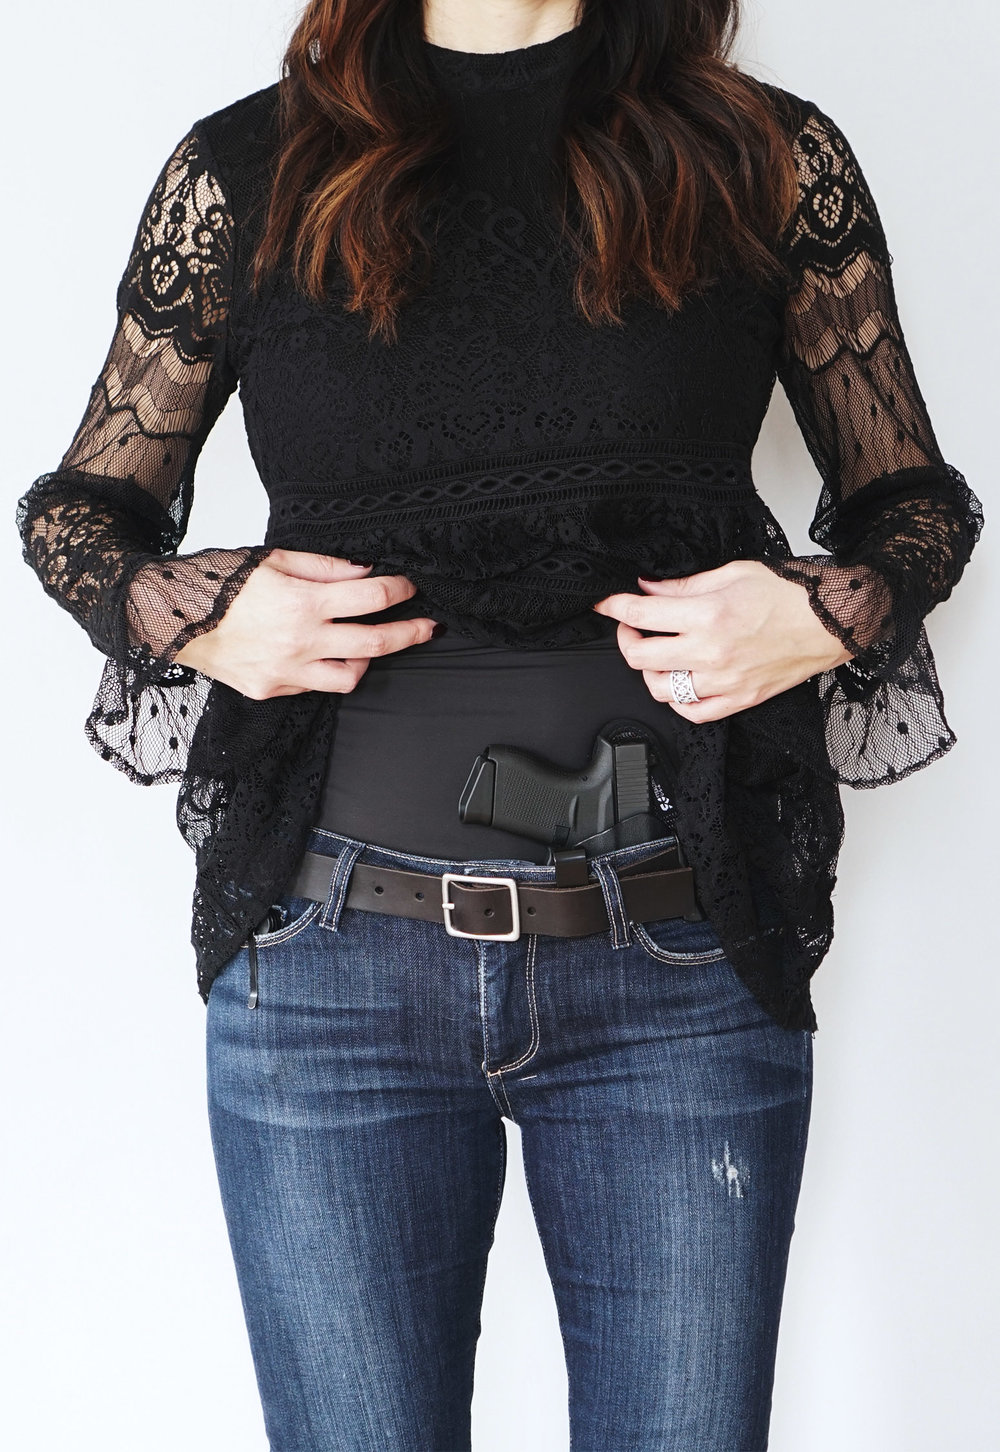 Concealed Carry Outfit for Women